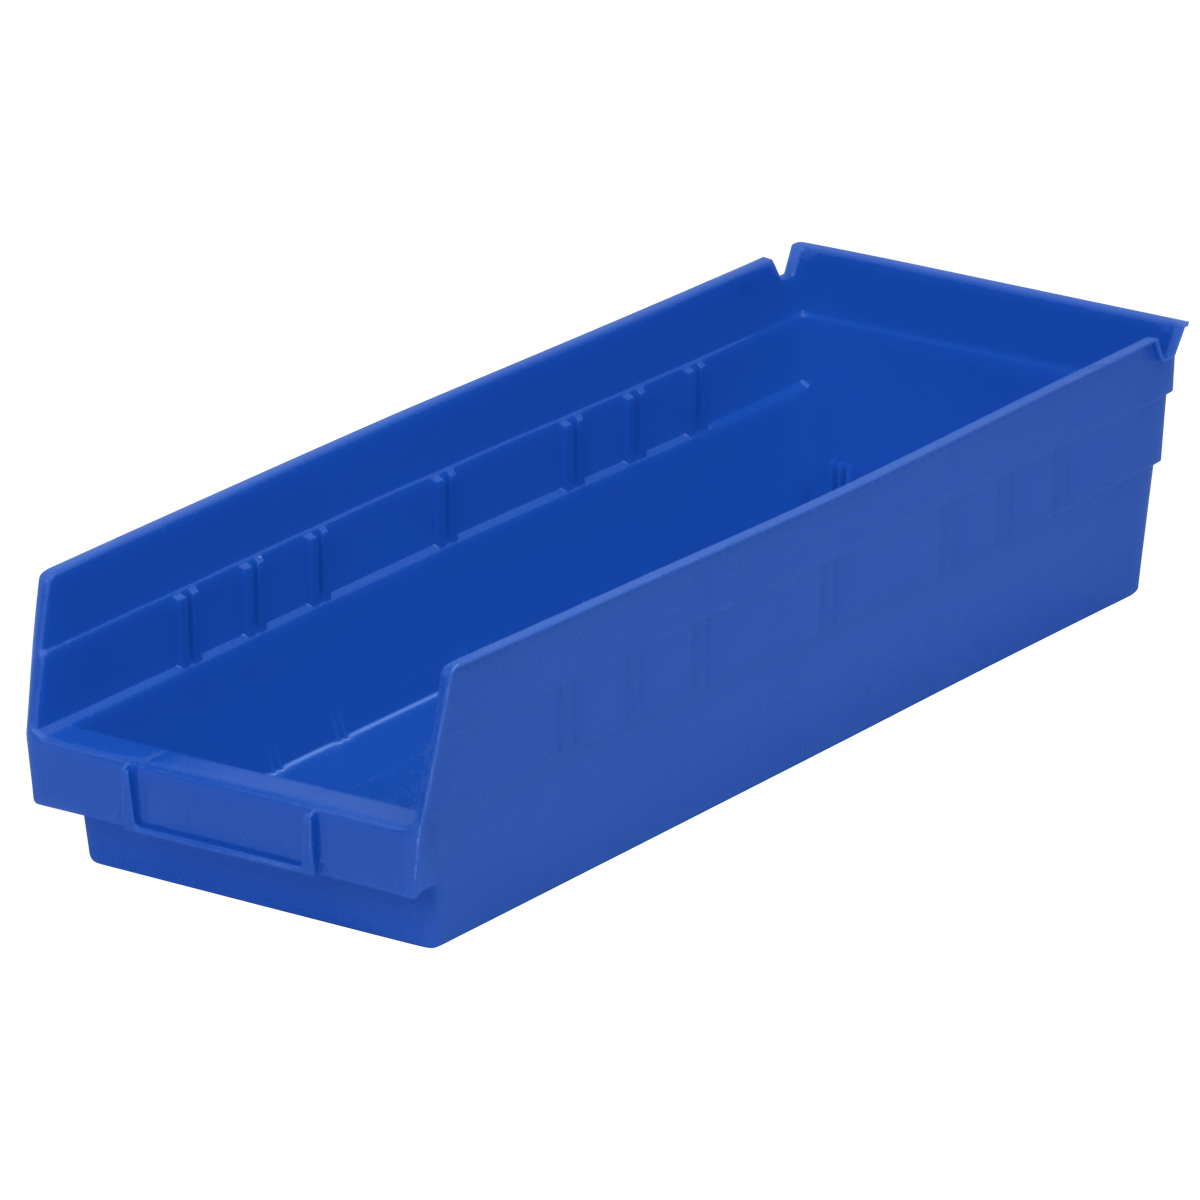 Shelf Bin 17-7/8 x 6-5/8 x 4, Blue (30138BLUE).  This item sold in carton quantities of 12.